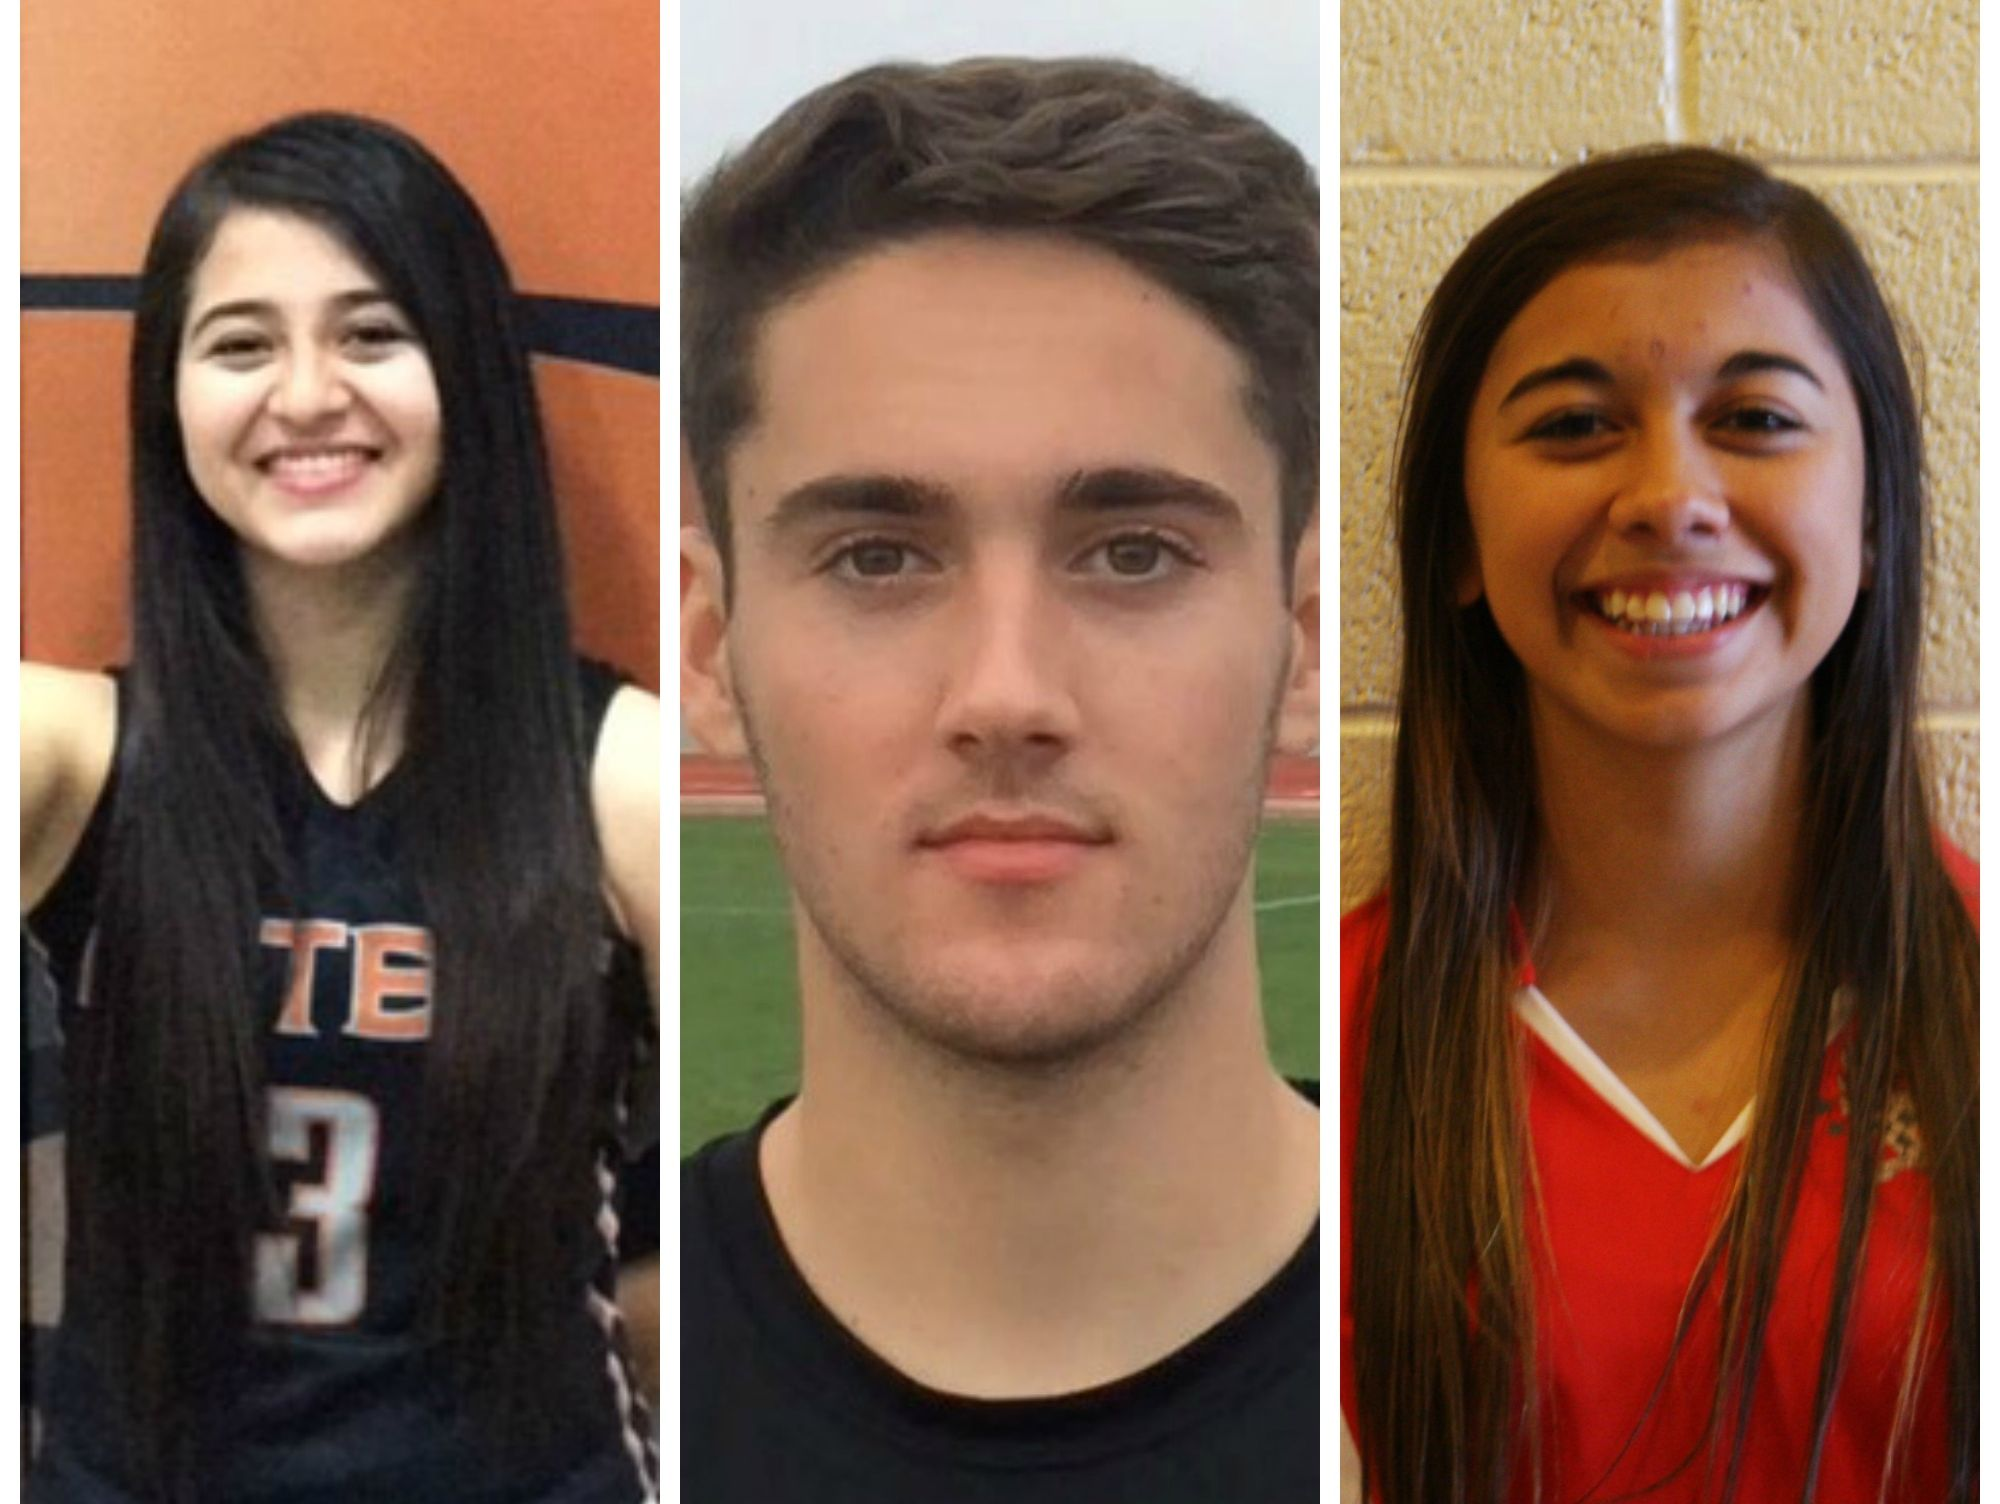 Congratulations to the Arizona Sports Awards Academic All-Star of the Week, Karen Peraza, and Athletes of the Week, Tucker Fenton and Shanya Marquez, presented by La-Z-Boy Furniture Galleries, for Jan. 29-Feb. 2.